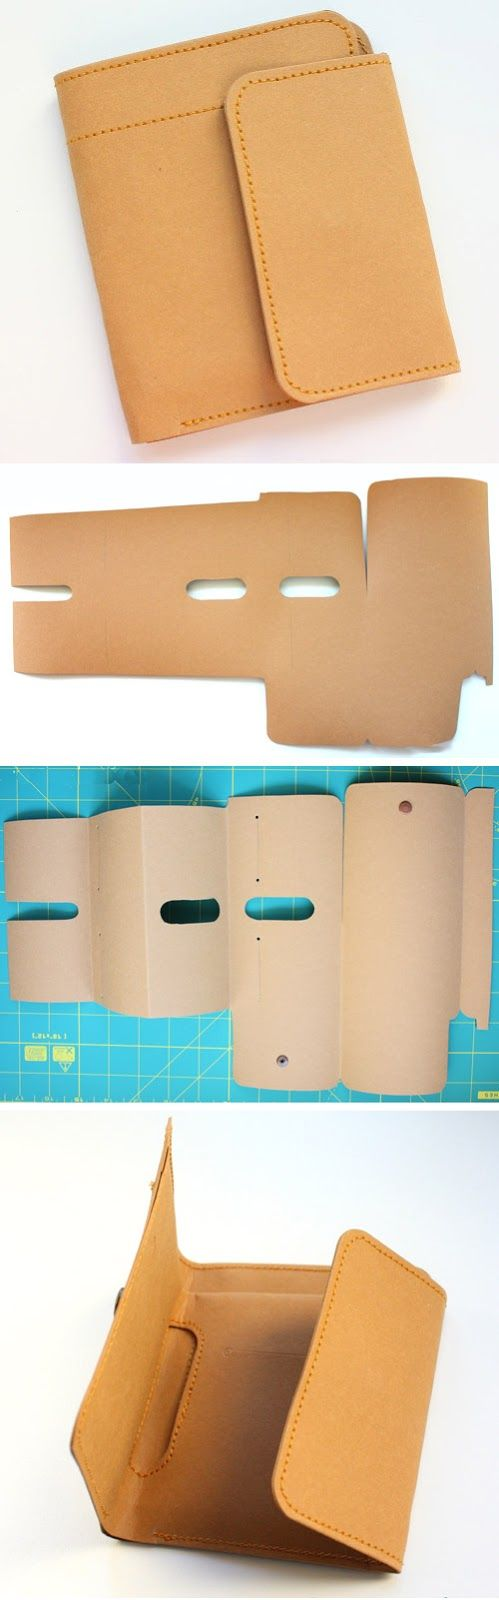 Mens Washable Kraft Paper Wallet handmade. DIY Tutorial in Pictures.  http://www.handmadiya.com/2015/10/kraft-paper-fabric-wallet.html